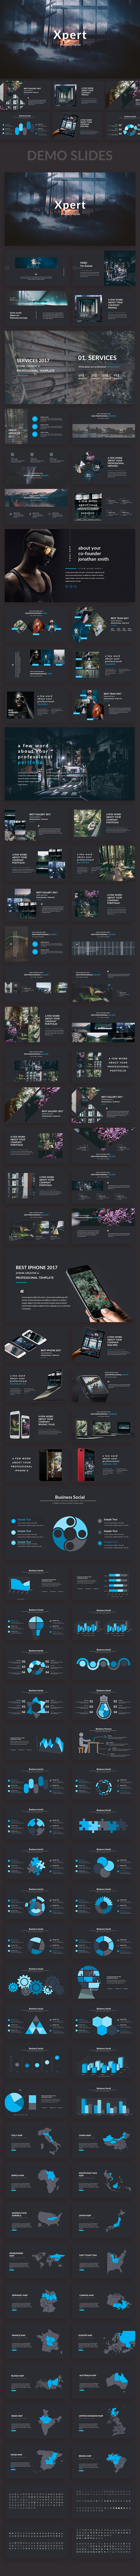 Xpert Creative Keynote Template - Creative Keynote Templates